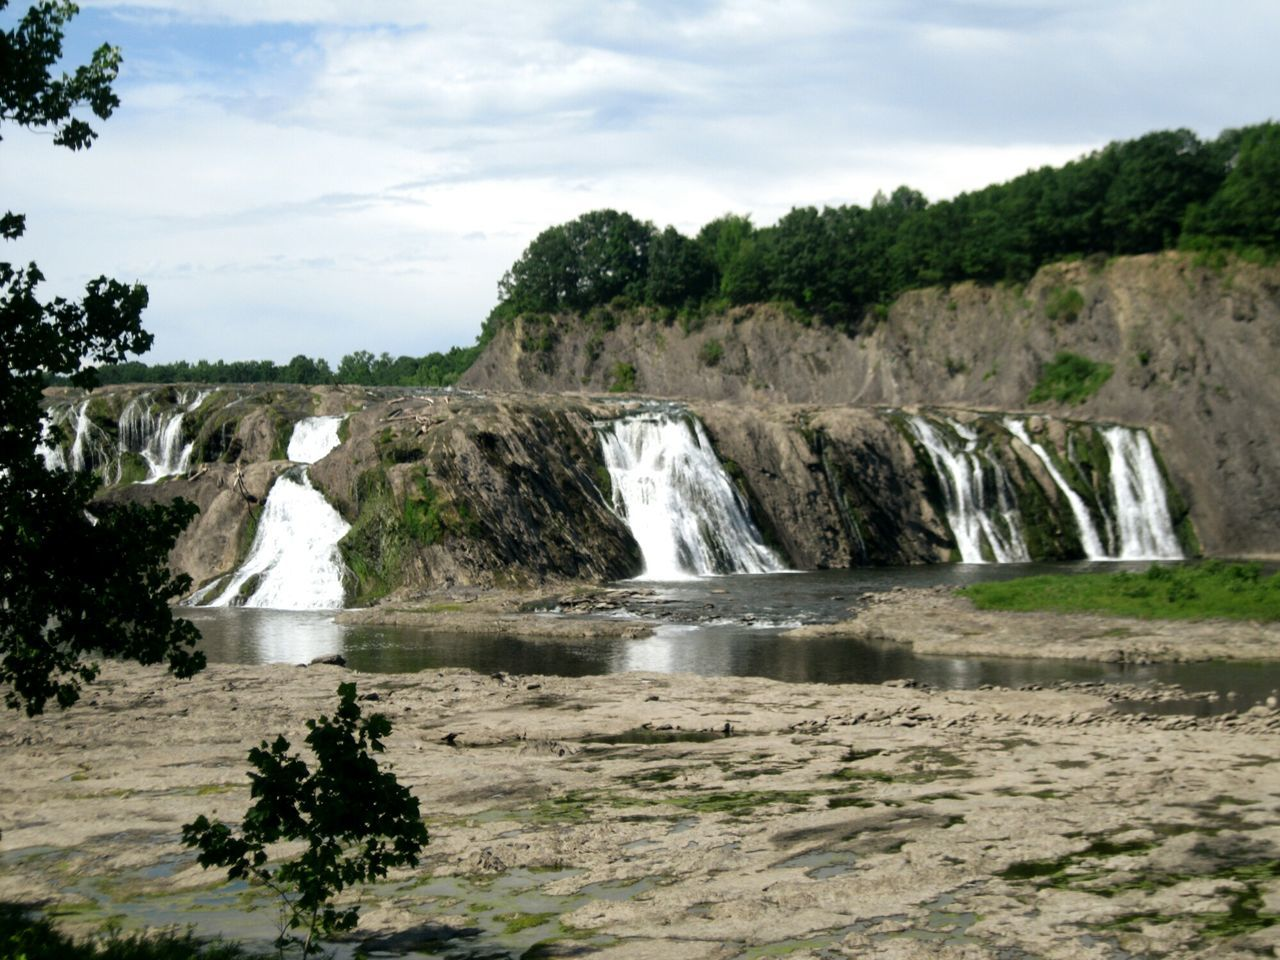 Cohoes Falls New York Waterfalls And Calming Views  Waterfall Waterscape Landscape Landscapes With WhiteWall Cohoes Cohoes Newyork Water Falls Serene Off The Beaten Path Nature Nature Photography Adventure Relaxing Things I Like The Great Outdoors - 2016 EyeEm Awards